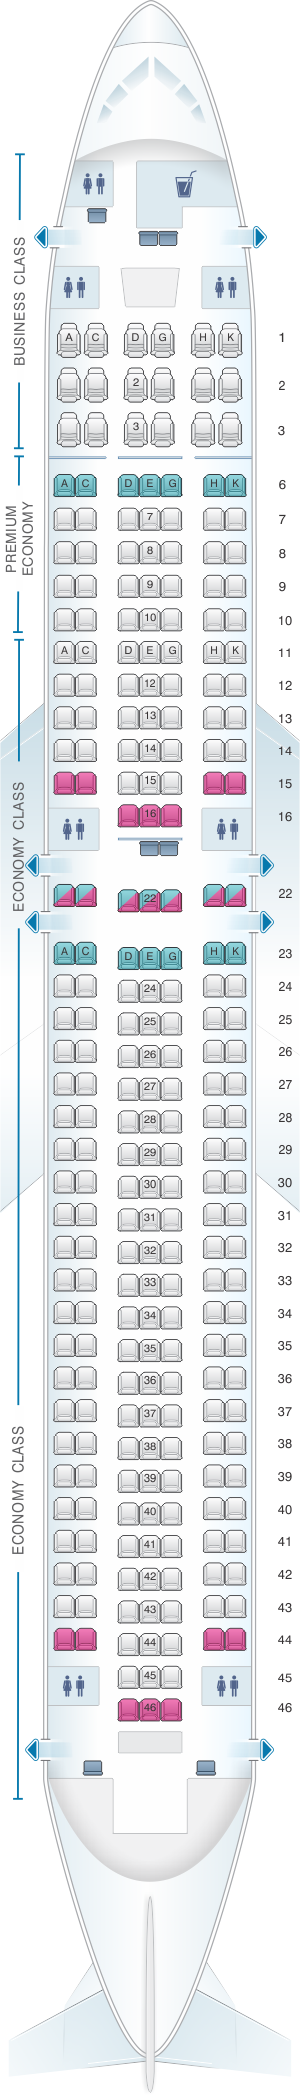 Seat map for Condor Boeing B767 300ER version2